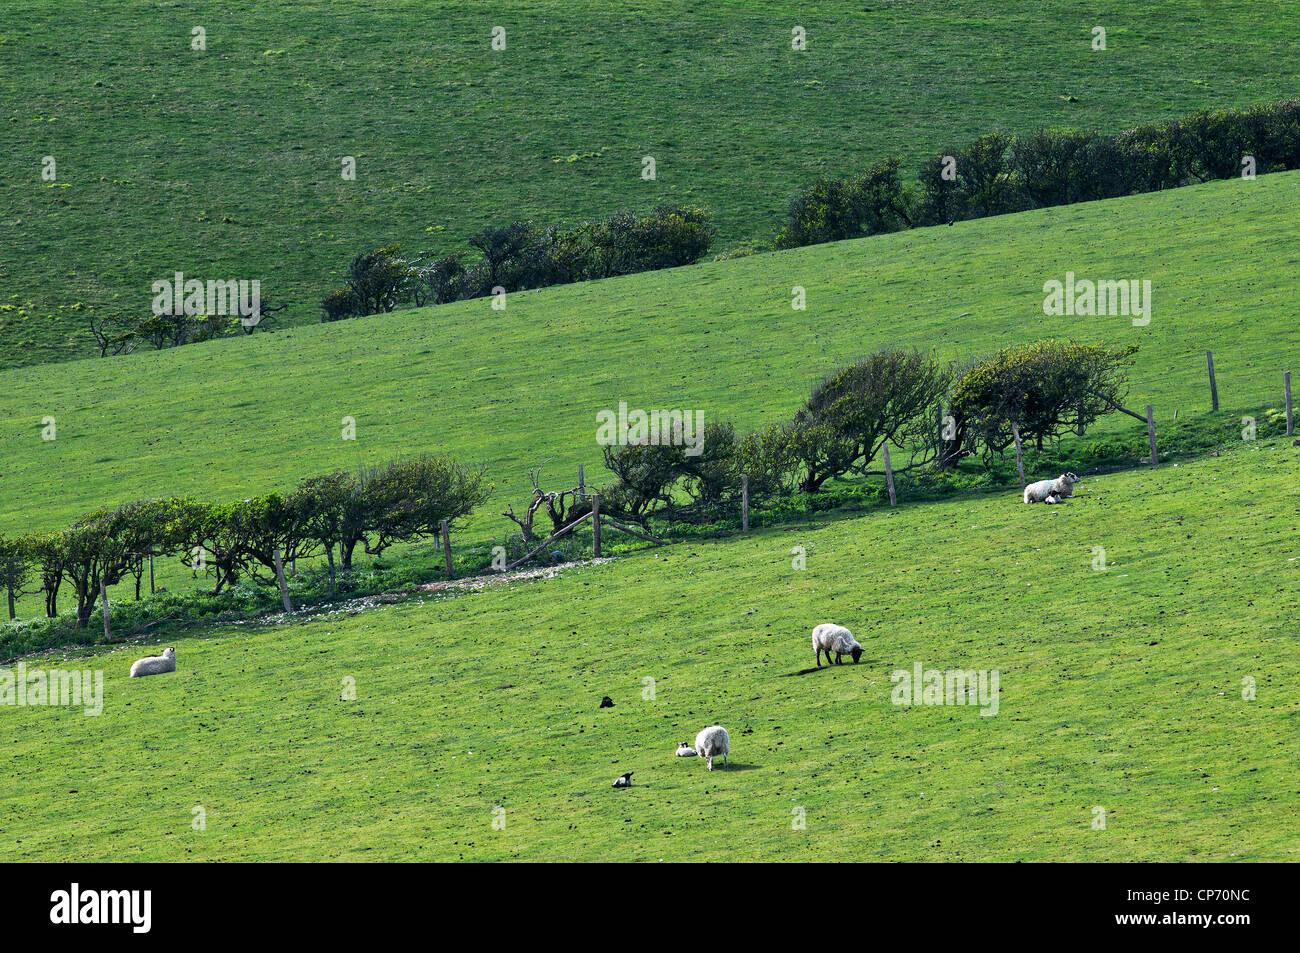 Sheep in a field in East Sussex - Stock Image